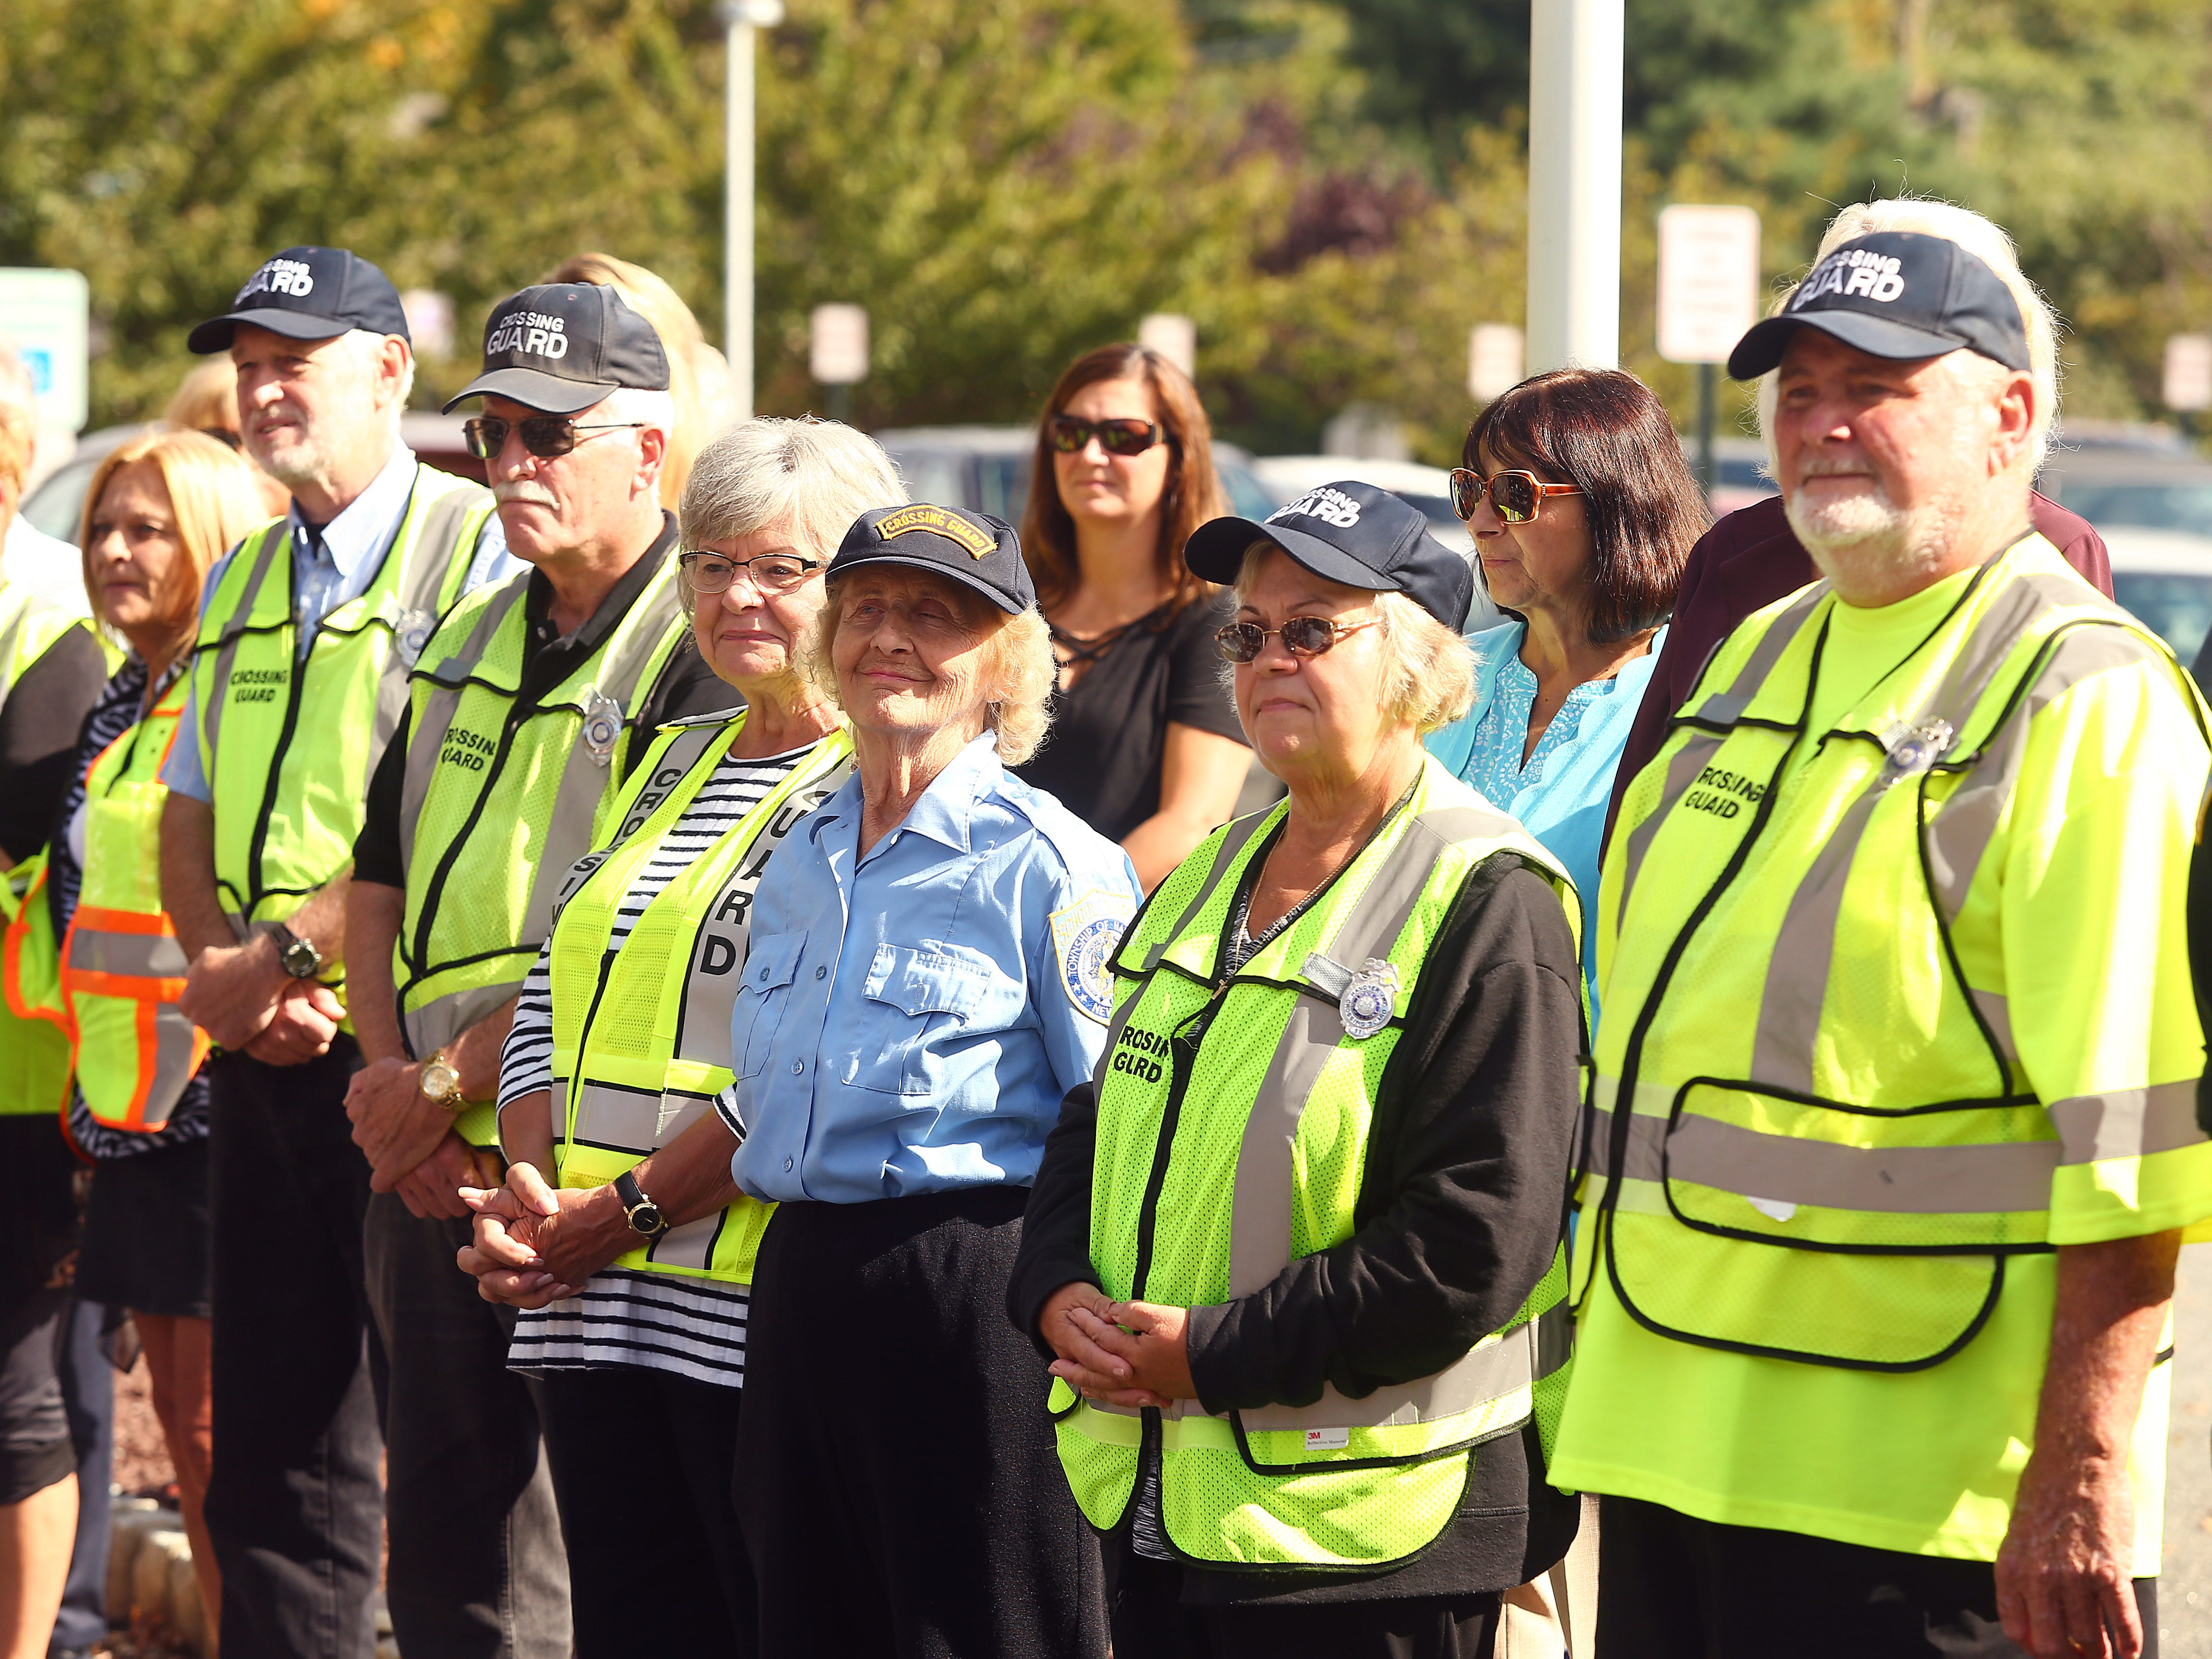 Crossing Guards came out in force to support friend Steve Bolcar during his police-style clapout for retirement of the 60-year officer and crossing guard at the Hanover Municipal Building. October 3, 2018, Hanover, NJ